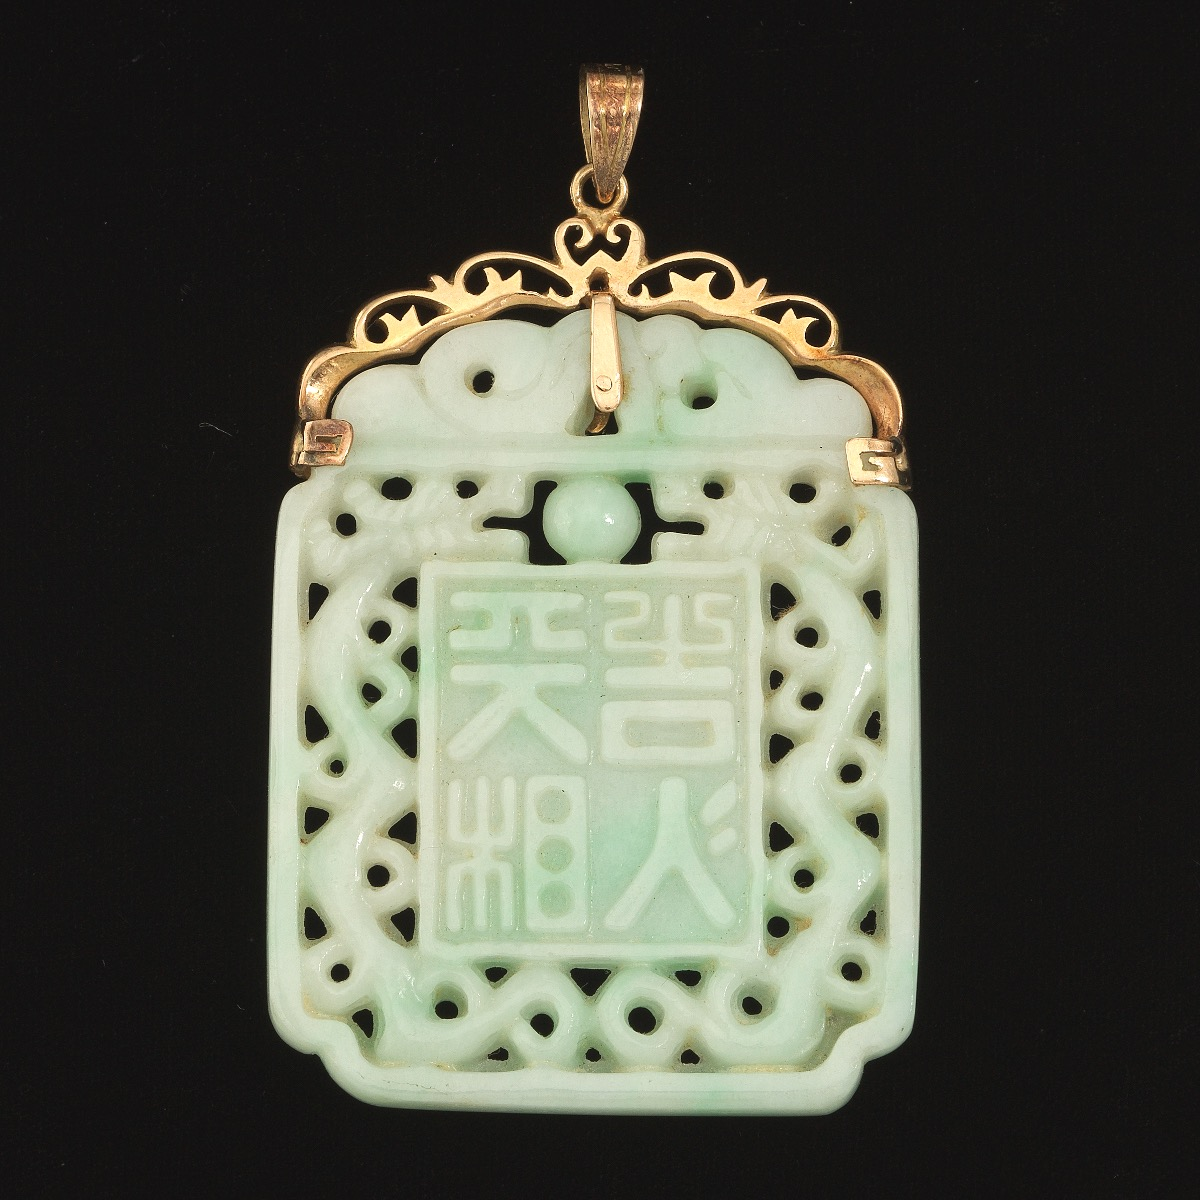 Chinese gold and carved natural whitegreen jadeite jade pendant of chinese gold and carved natural whitegreen jadeite jade pendant of double happiness apocryphal aloadofball